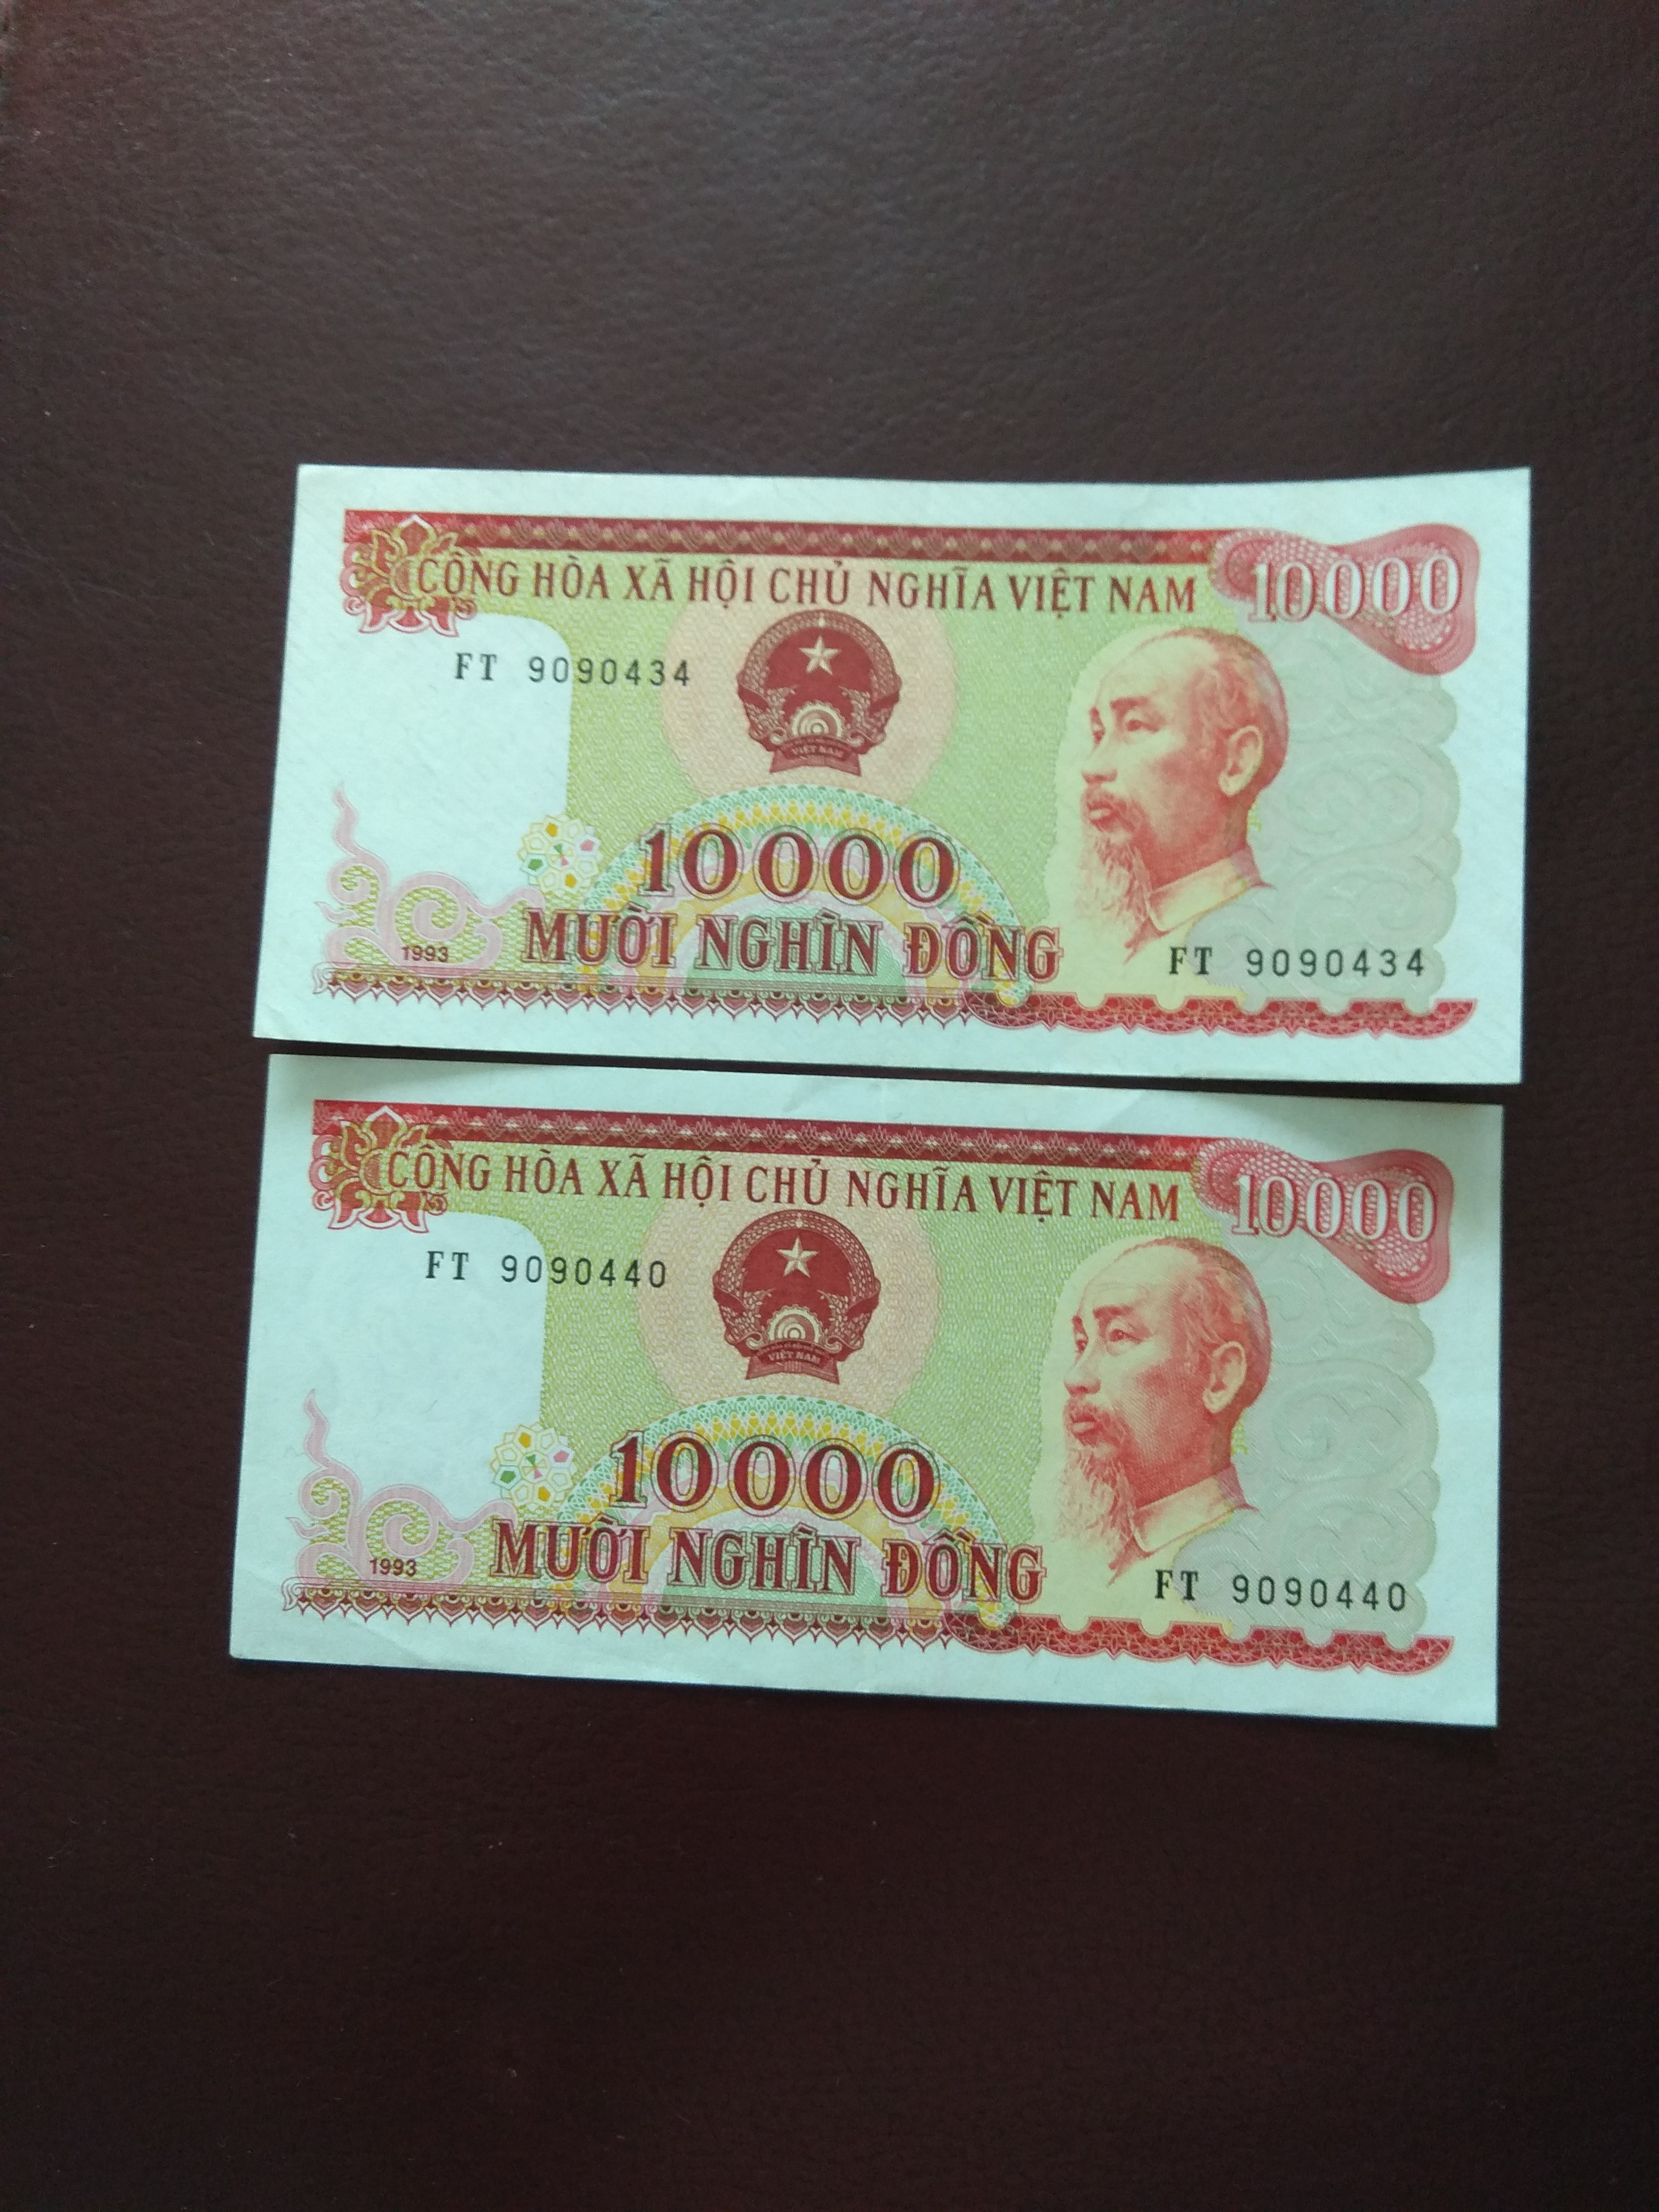 Vietnam Notes Year 1993, Vintage & Collectibles, Currency on Carousell